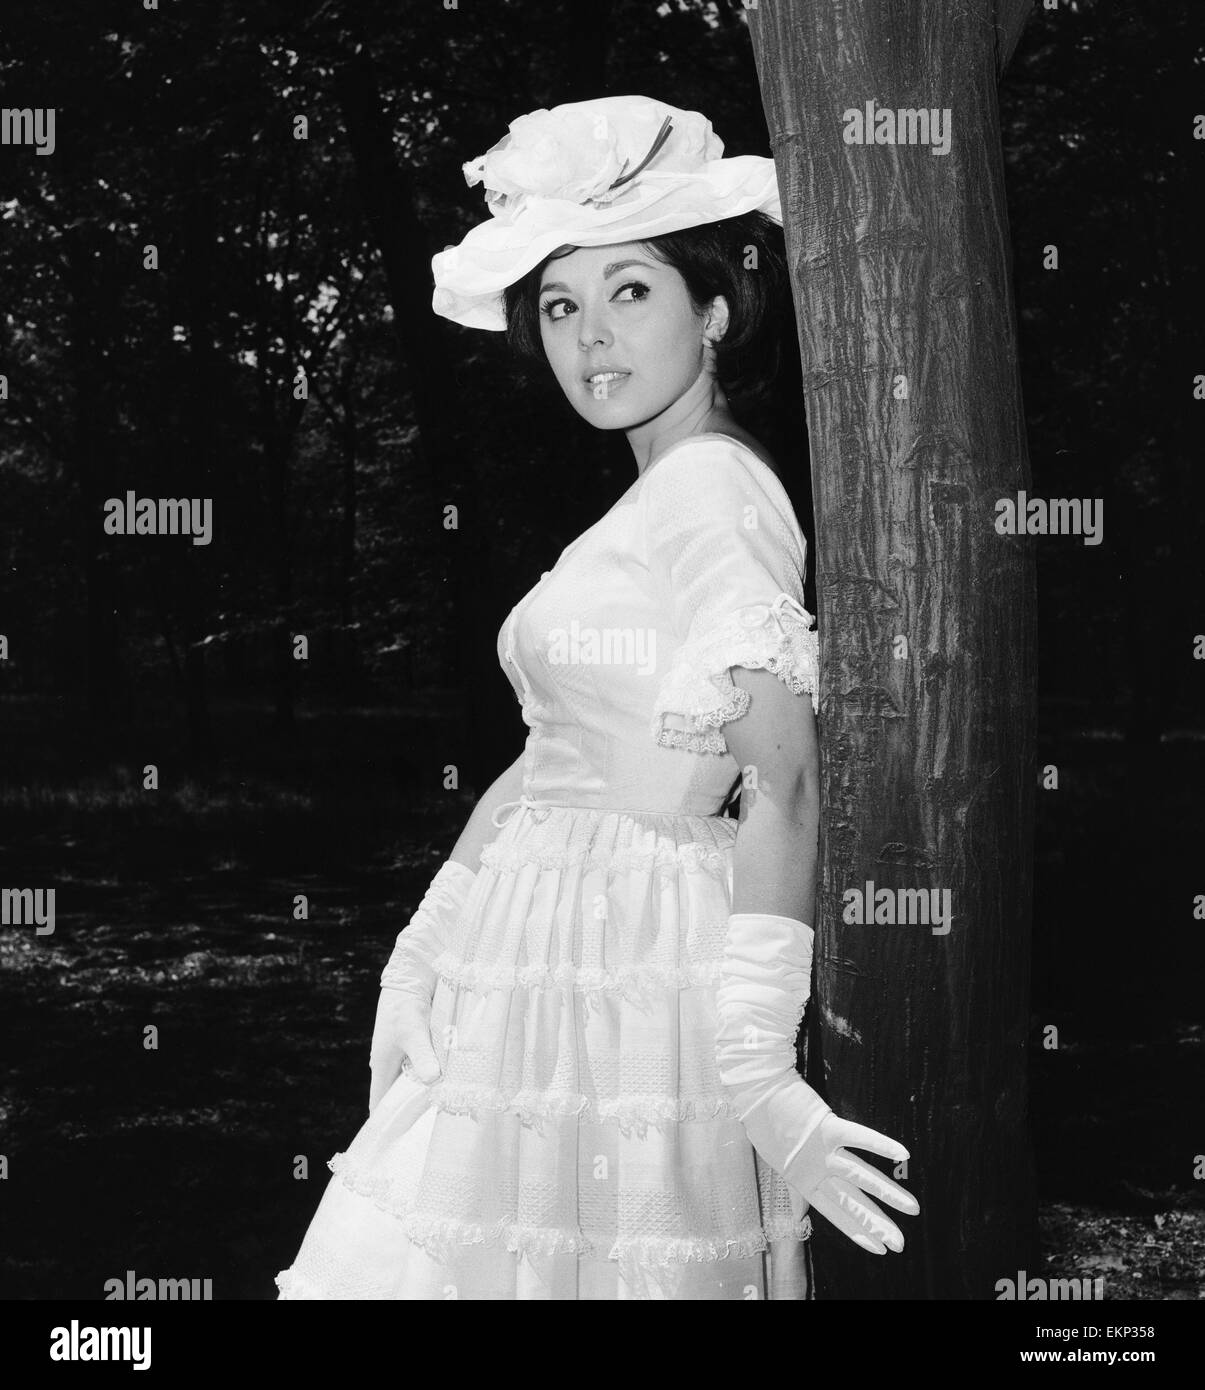 Actress and singer Susan Maughan, aged 20, photographed in a park near her home in Hornsey, London wearing an Ascot - Stock Image